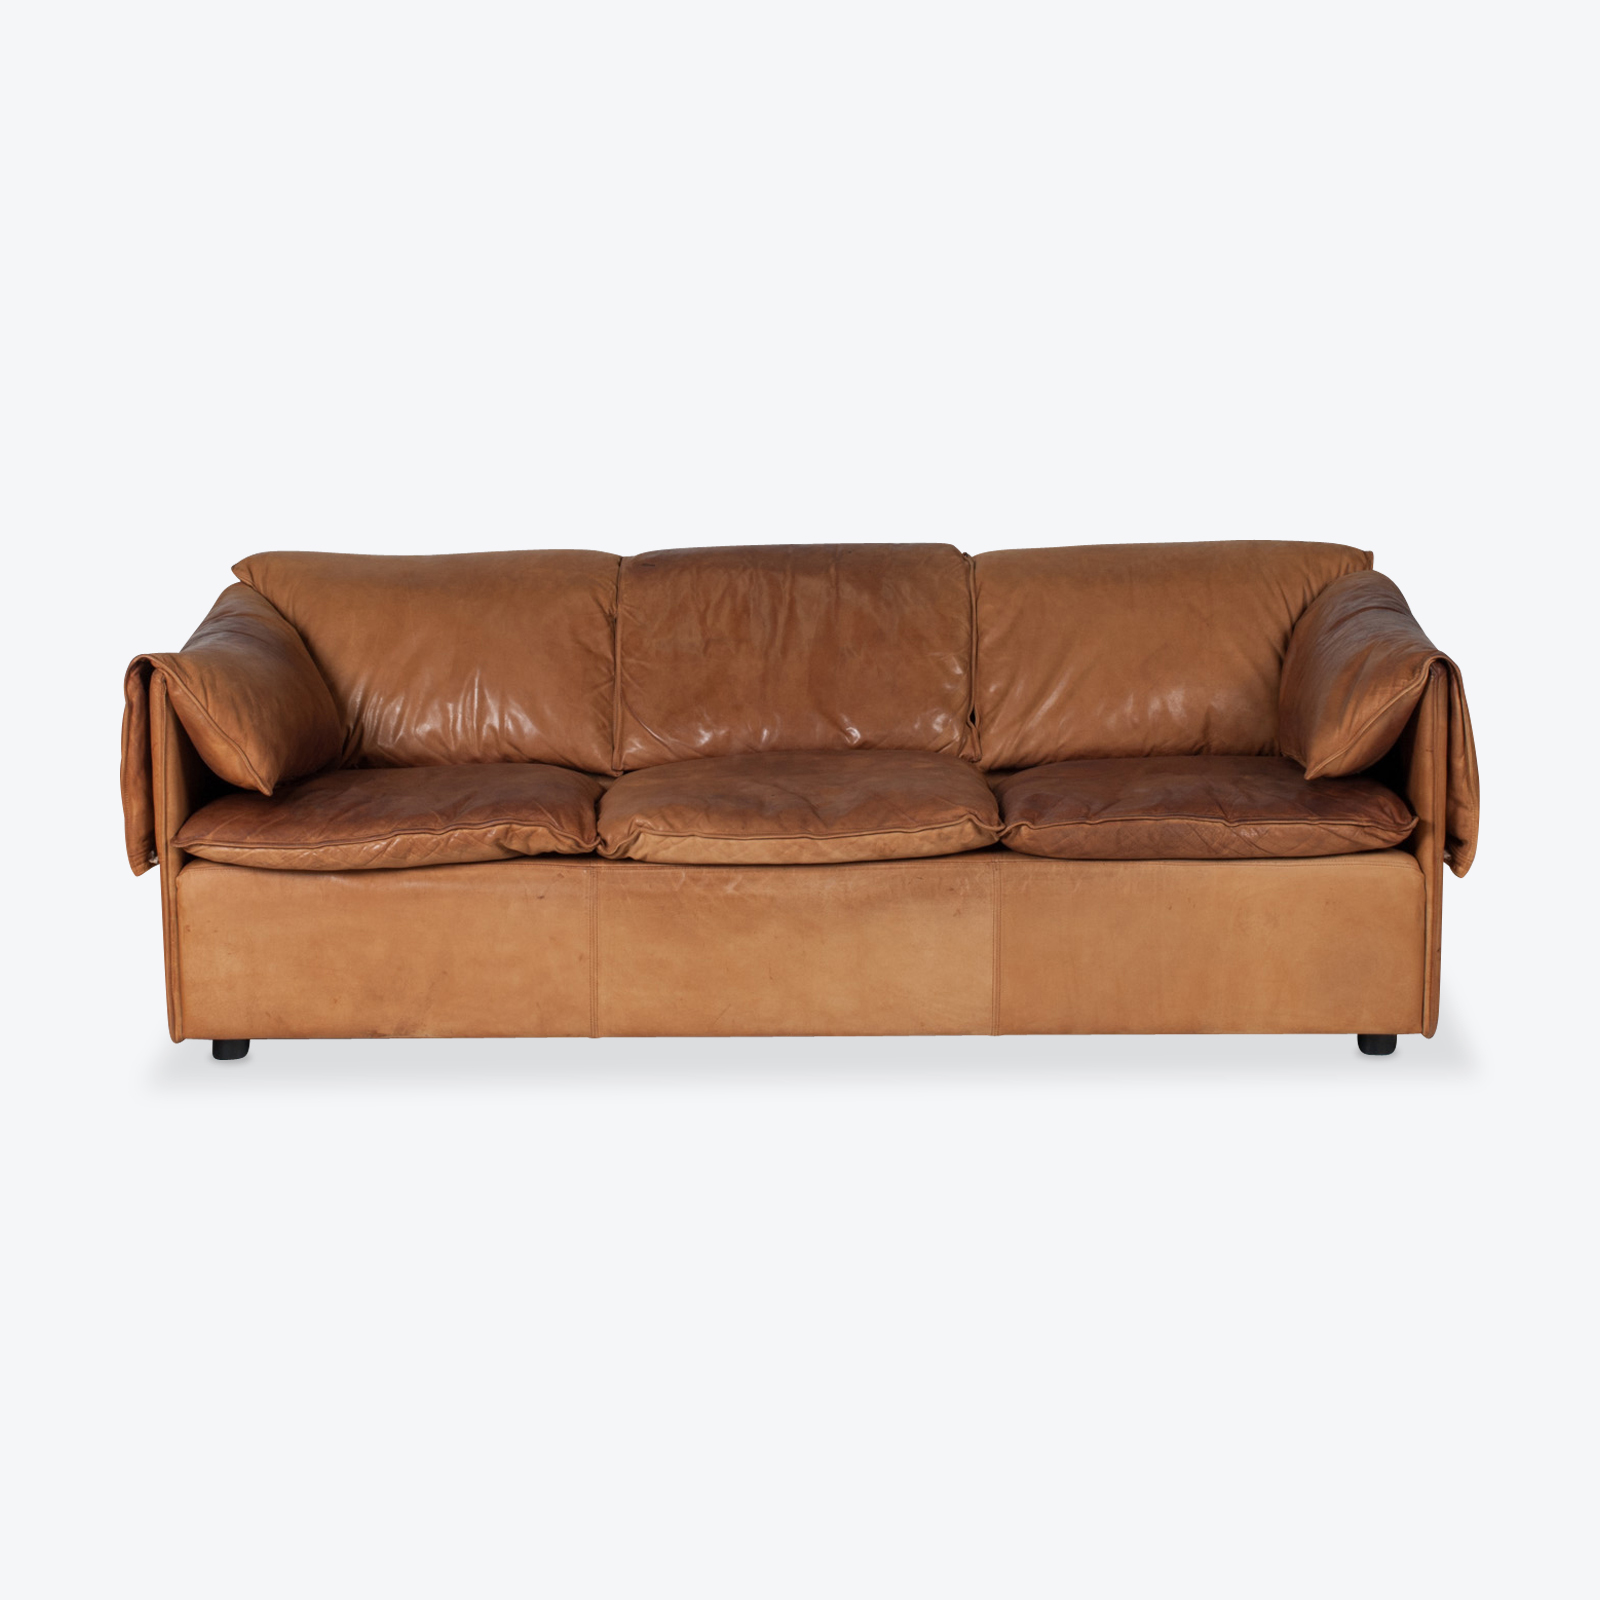 Model Lotus 3 Seat Sofa By Eilersen In Tan Leather 1970s Denmark 01